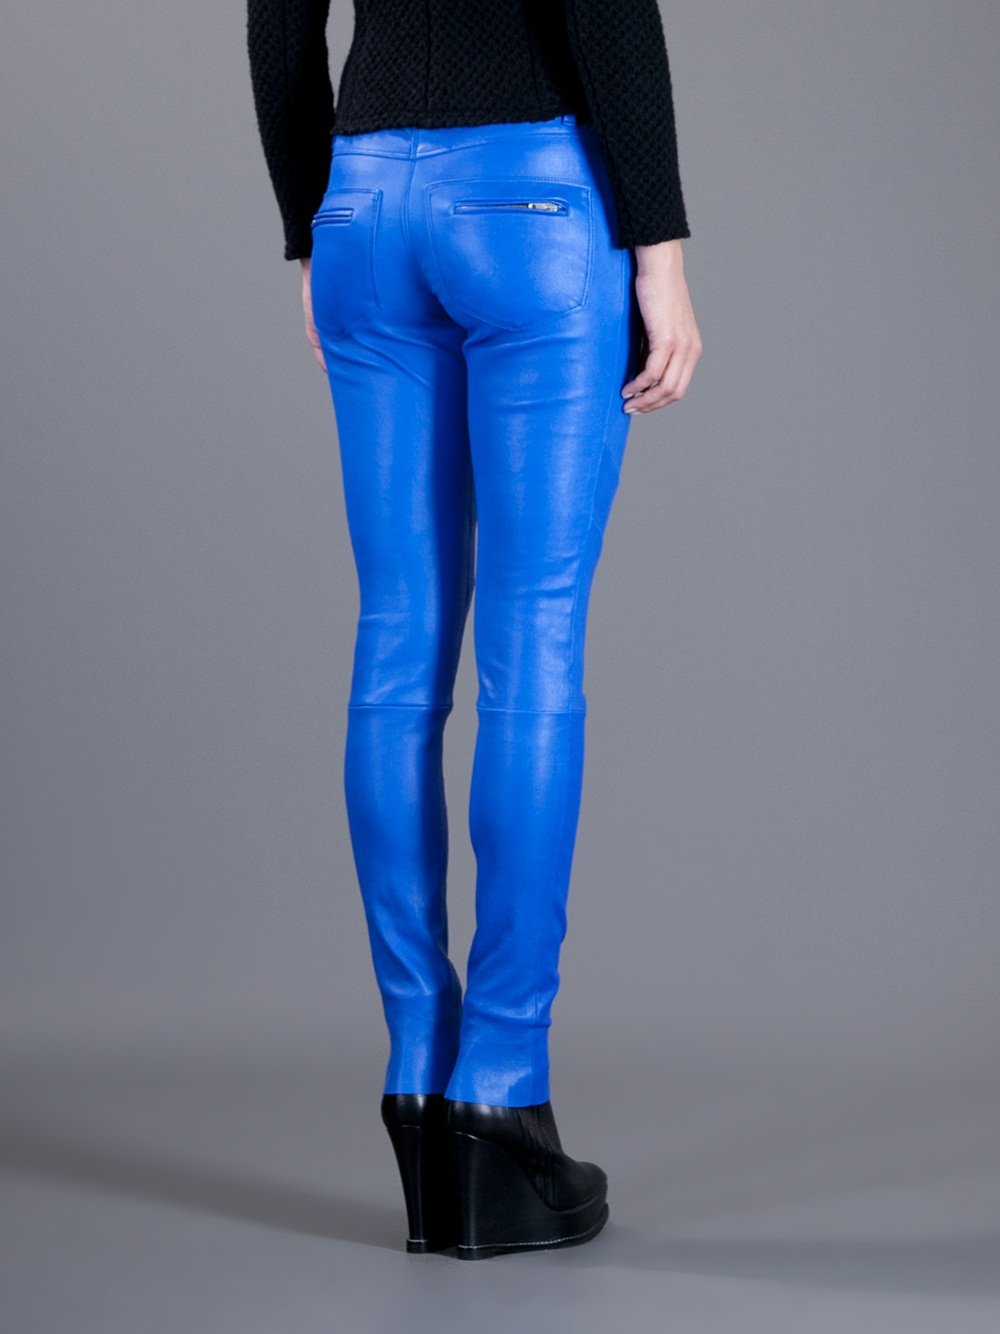 Find leather blue jeans at ShopStyle. Shop the latest collection of leather blue jeans from the most popular stores - all in one place.